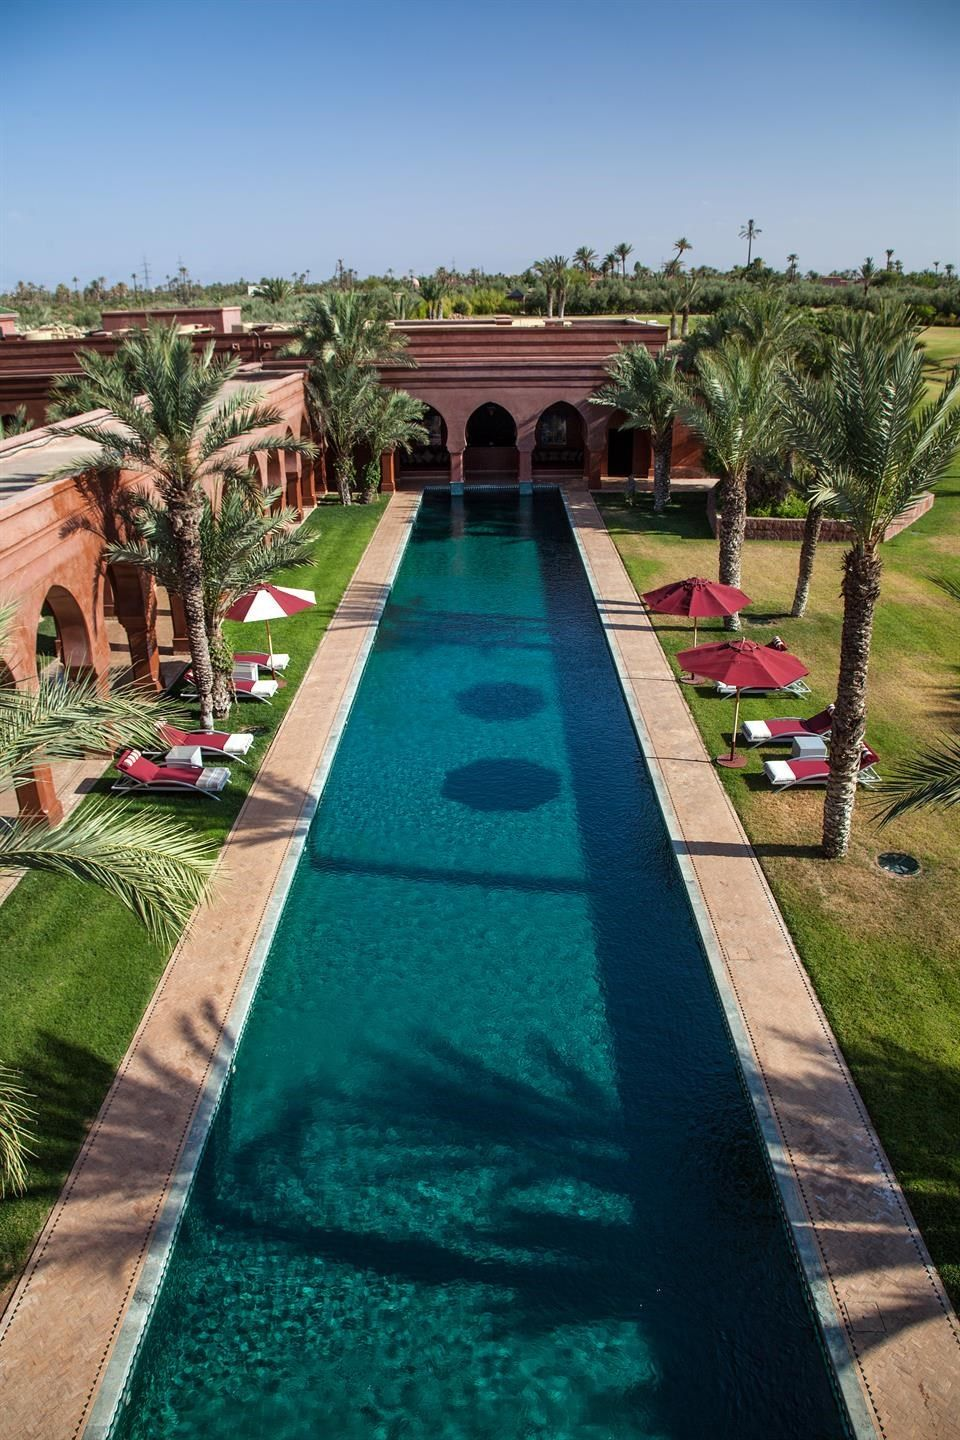 Luxury Home Swimming Pools dar olfa, a luxury home for sale in marrakech, marrakech